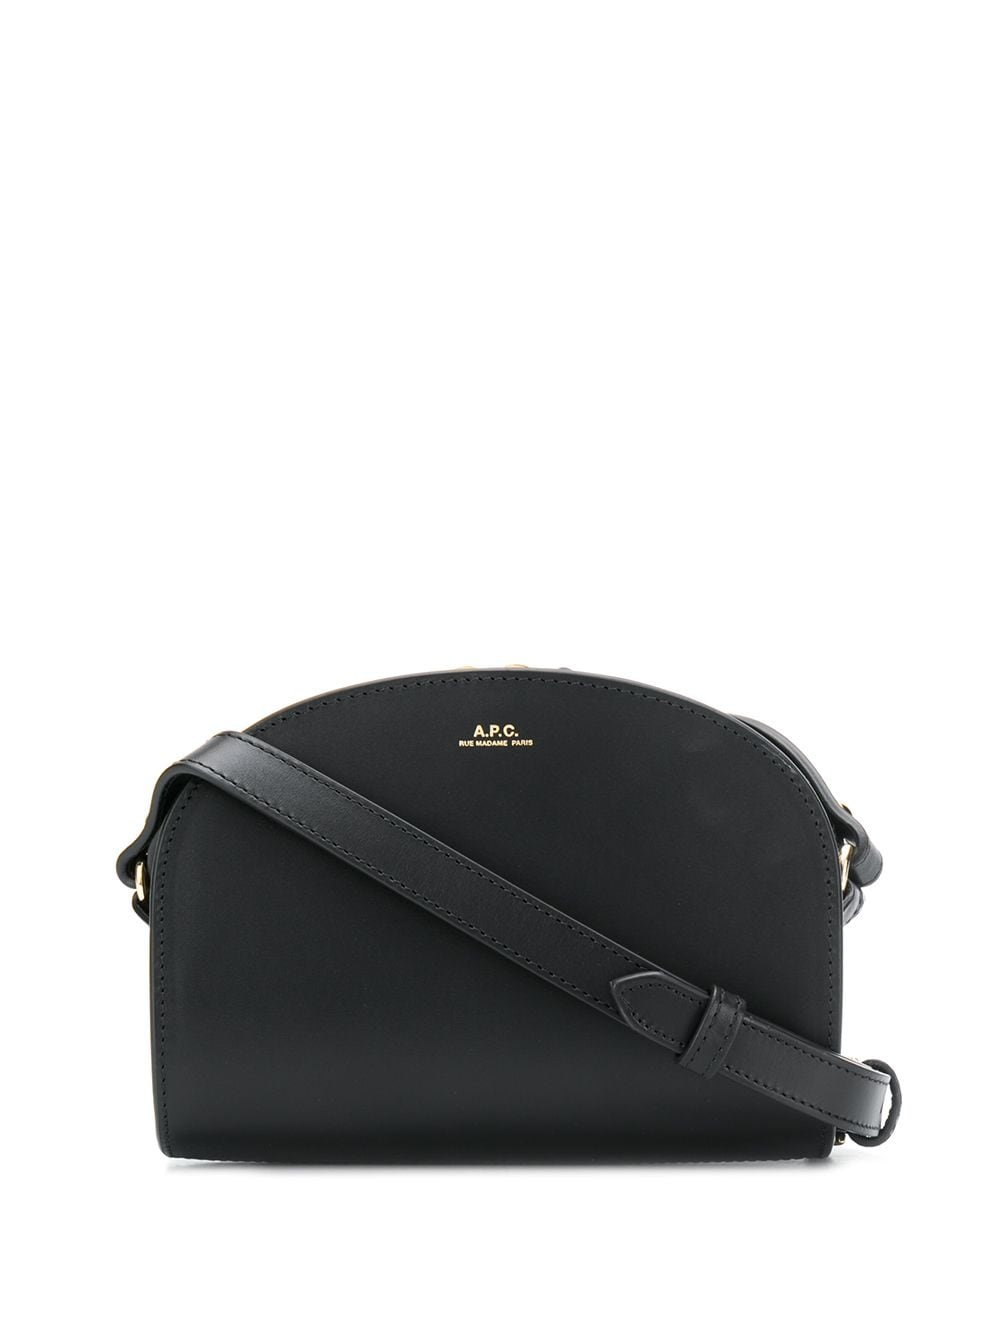 <p class='small-title'>A.P.C.</p>Round-Top Crossbody Bag